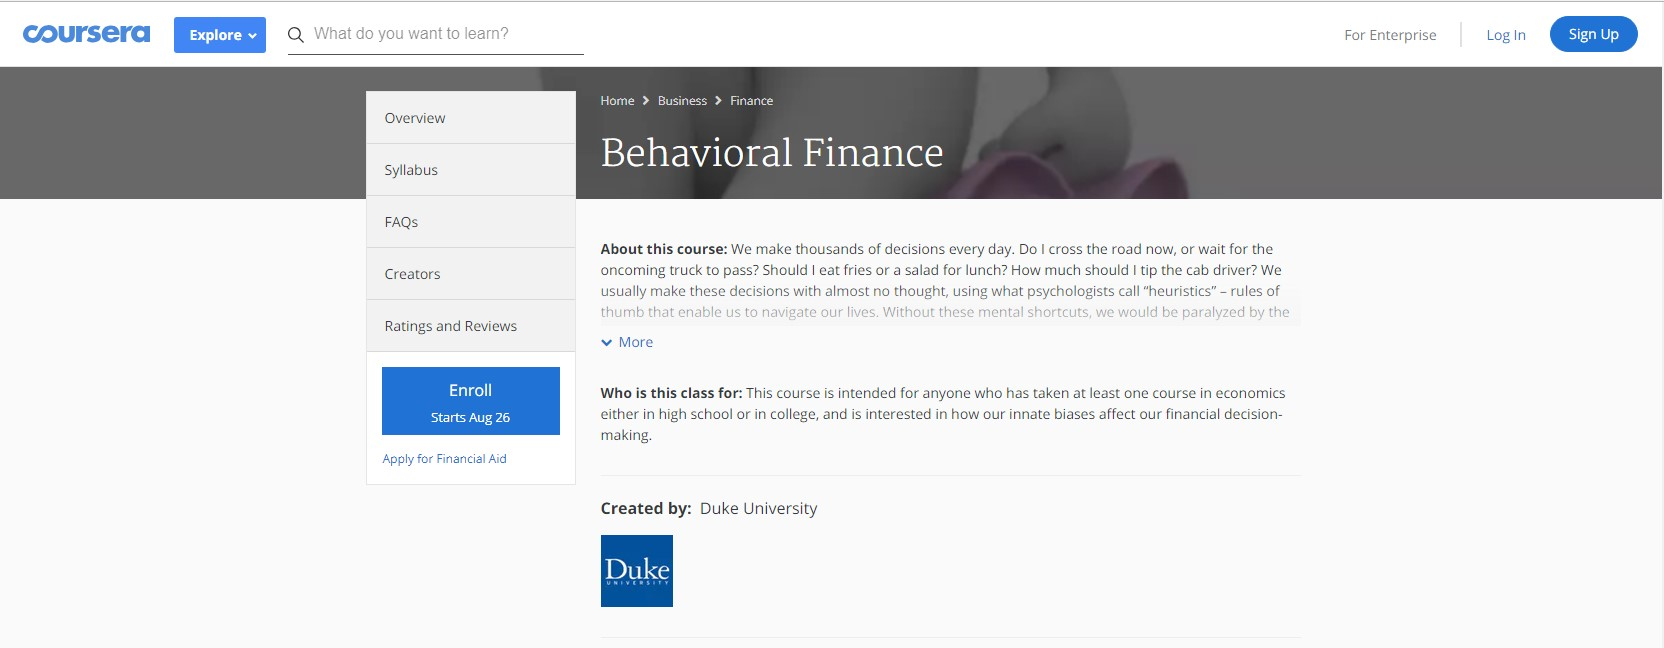 Coursera Behavioral Finance neuroeconomics